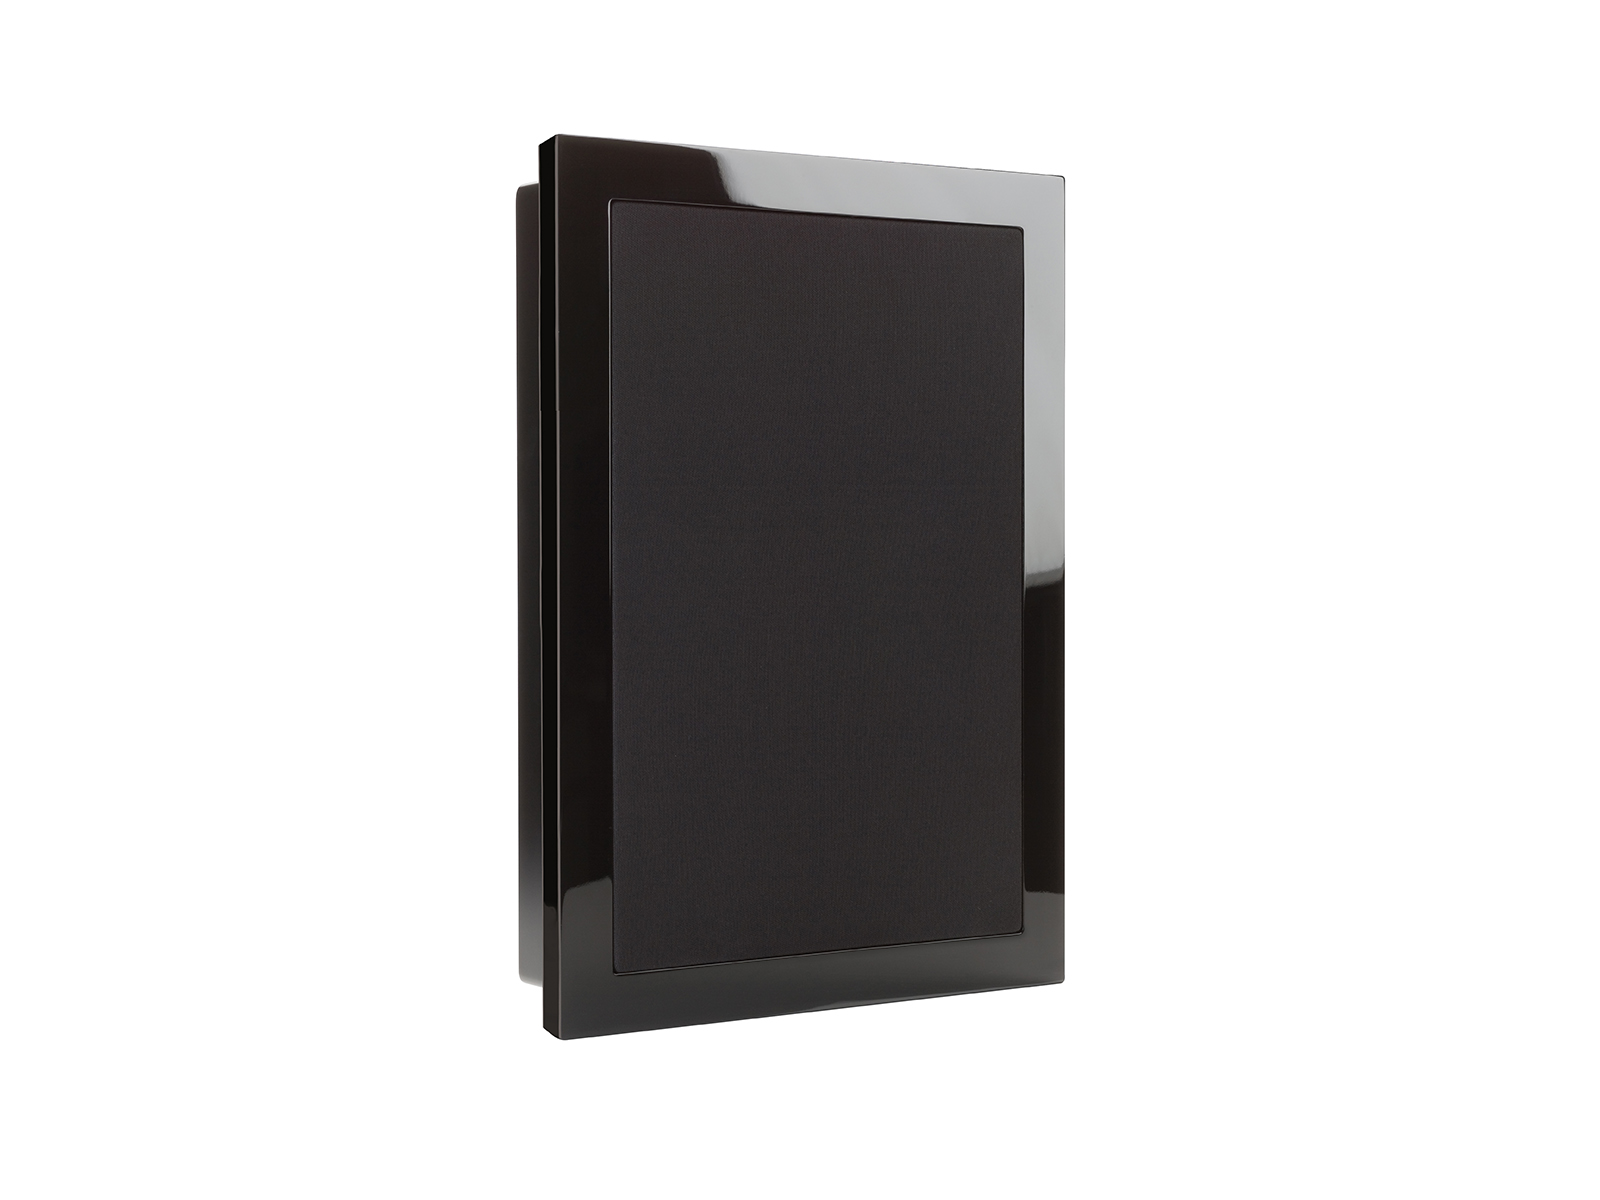 SoundFrame SF1, in-wall speakers, with a high gloss black lacquer finish.